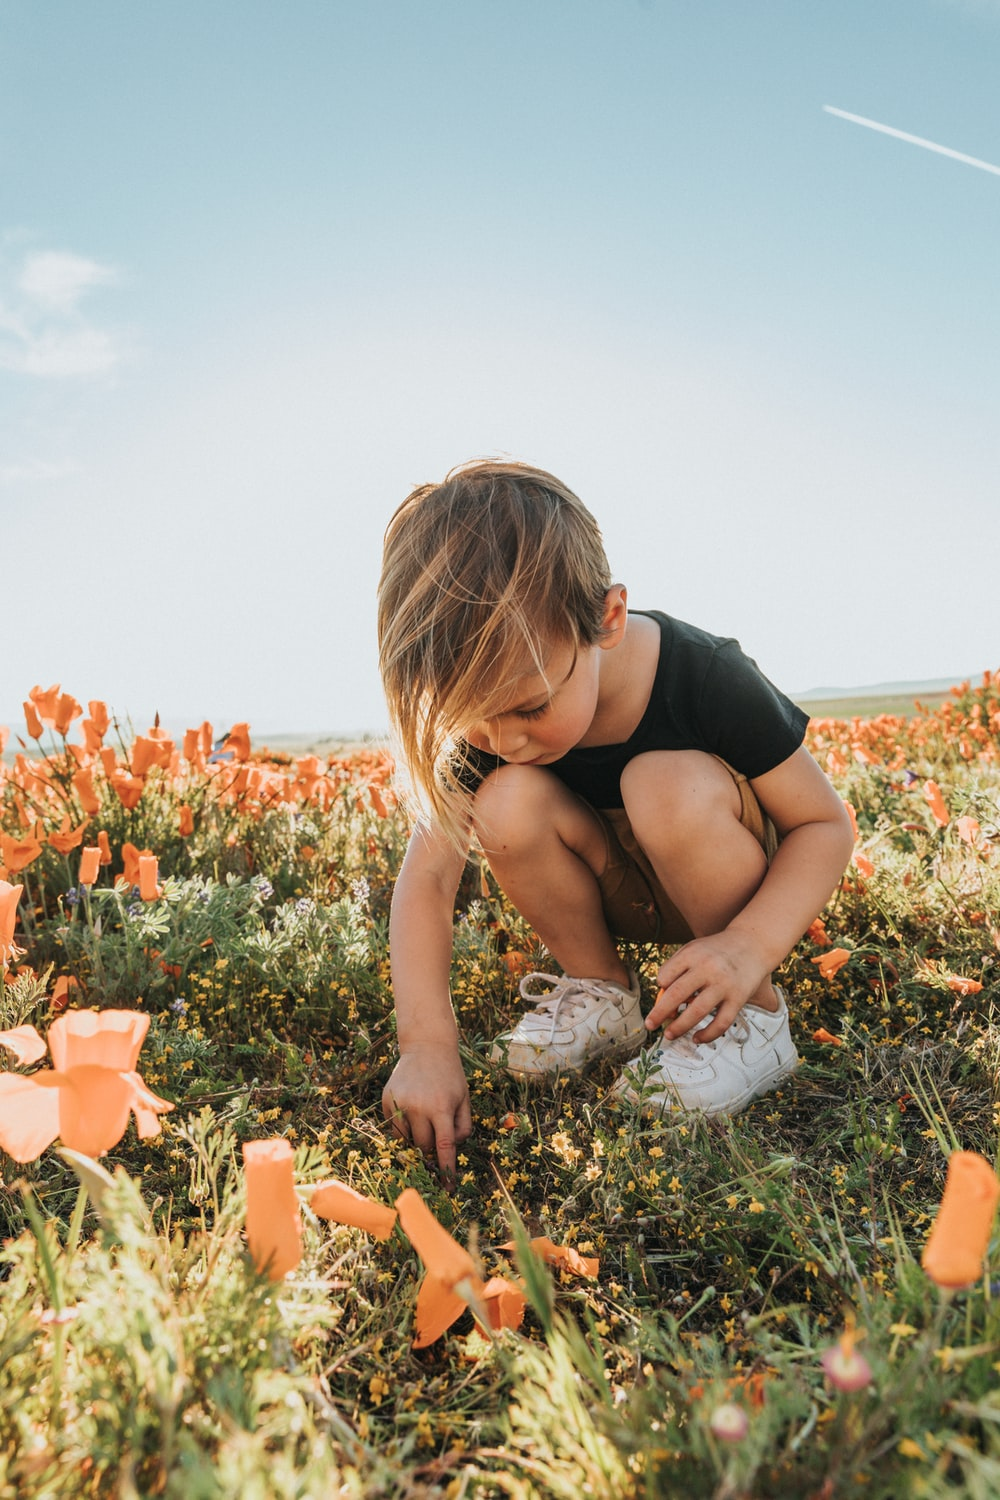 woman in black tank top sitting on ground surrounded by orange flowers during daytime